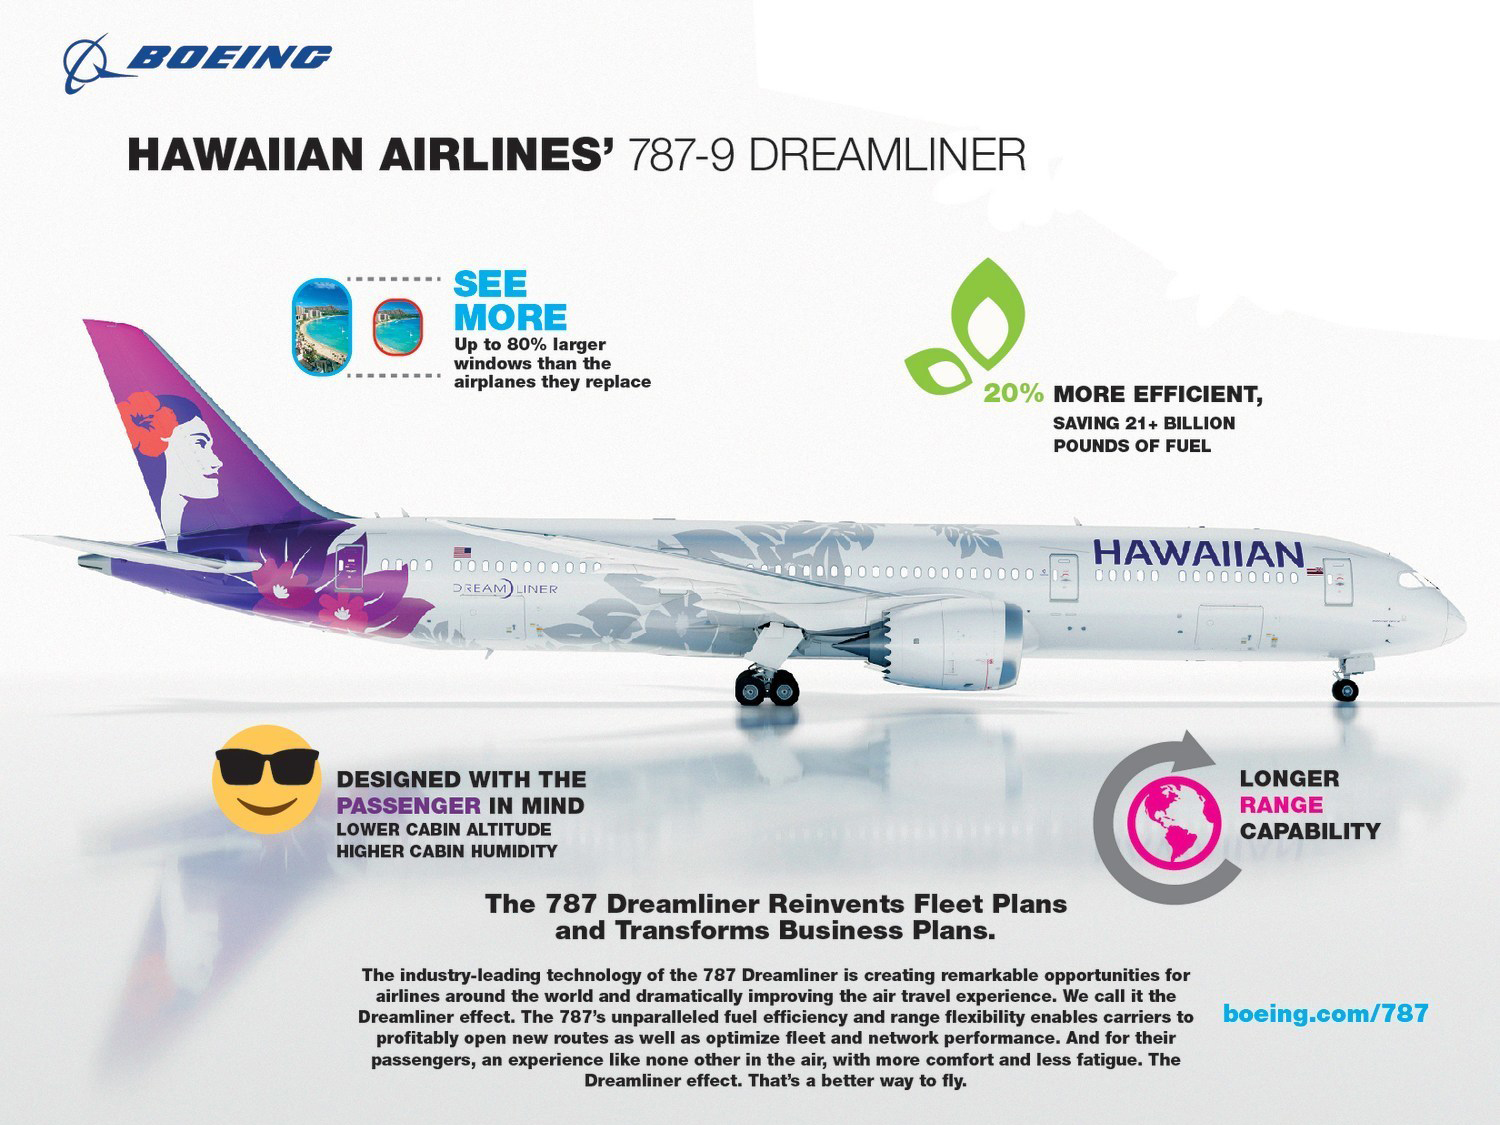 Hawaiian Airlines to buy 10 Boeing 787 Dreamliners